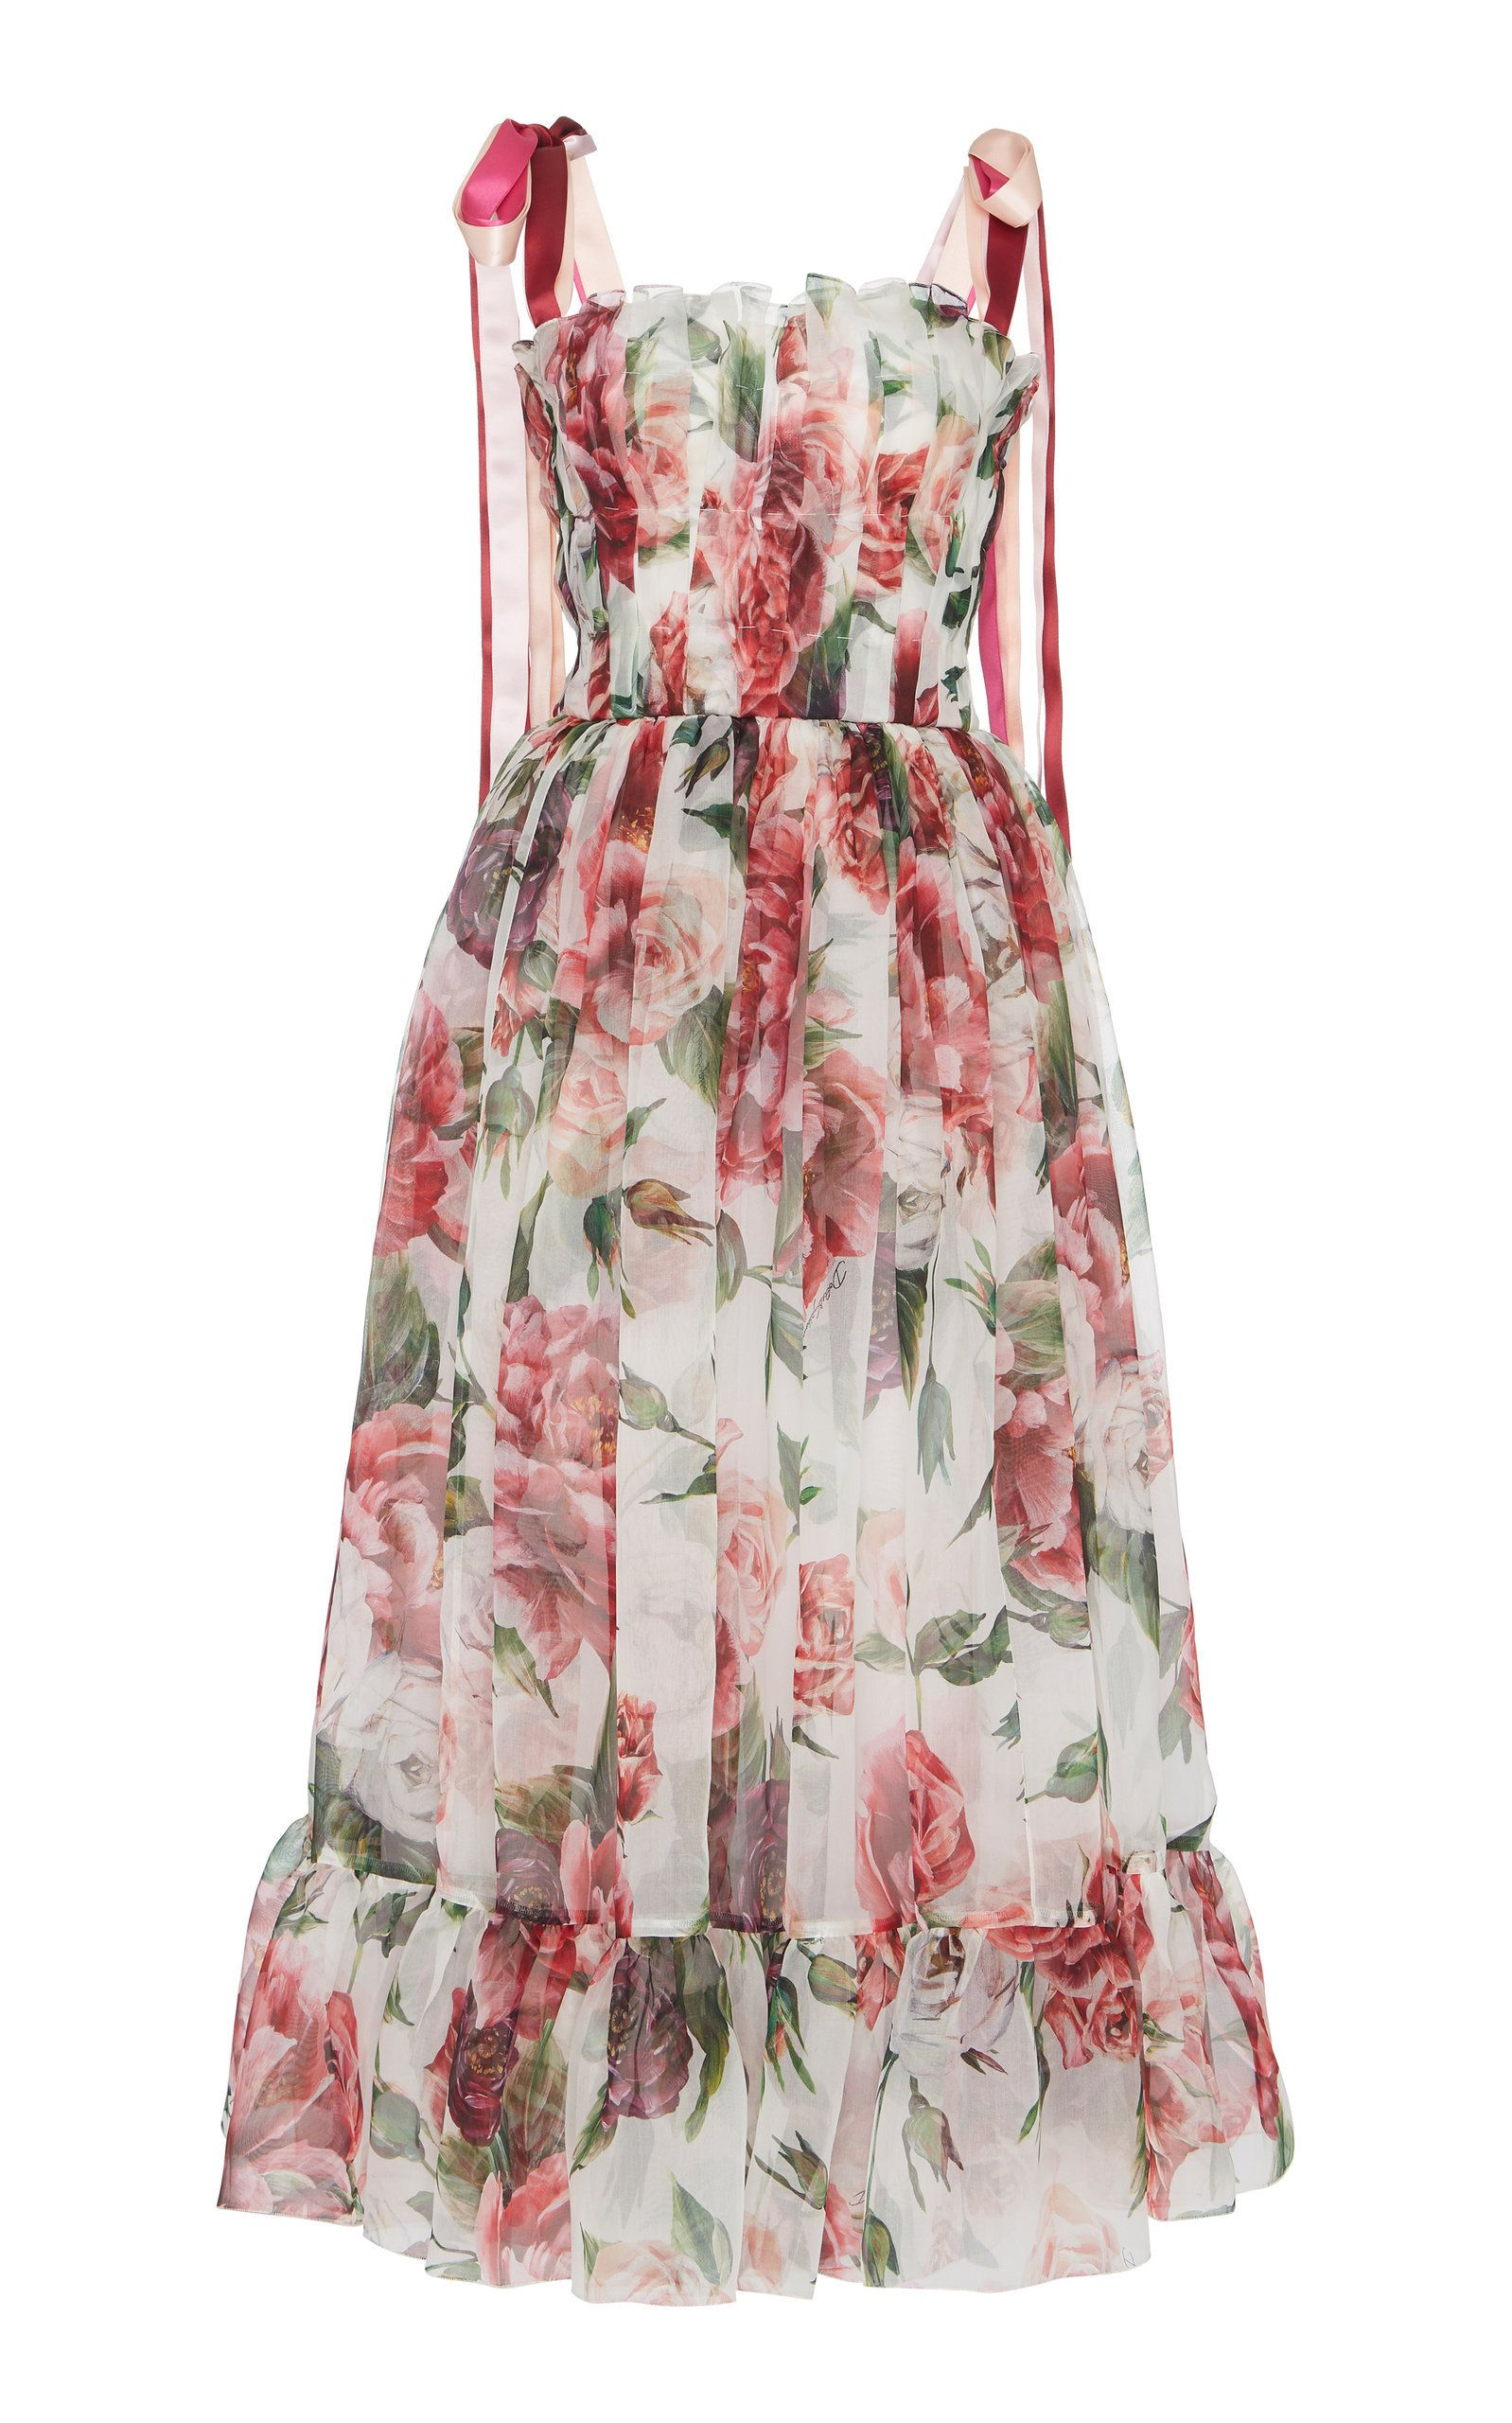 dbb01d0b041 Peony-Print Organza Midi Dress by DOLCE & GABBANA Now Available on Moda  Operandi